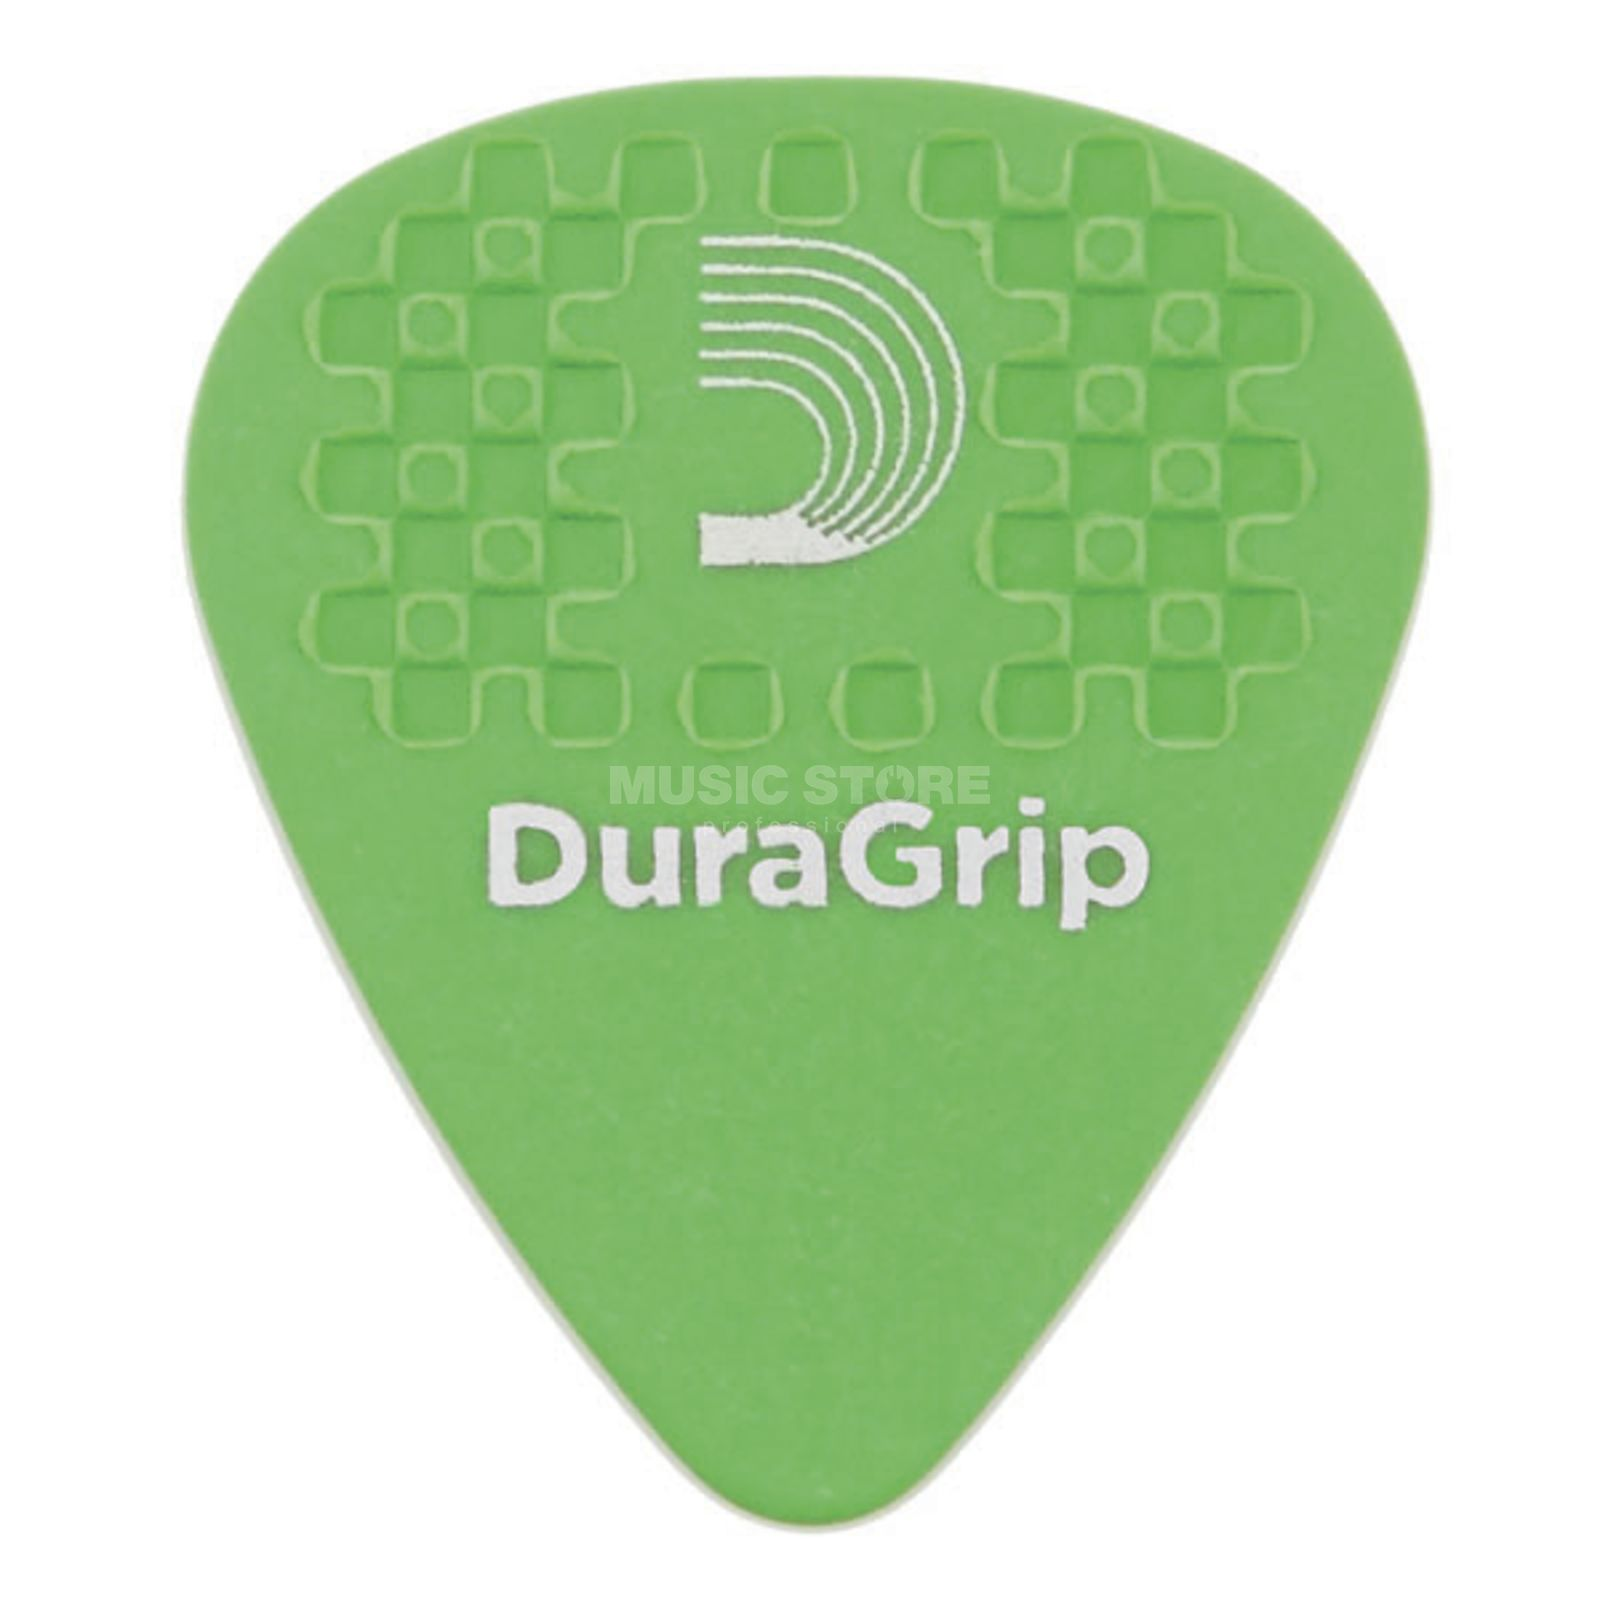 D'Addario Planet Waves DuraGrip Picks Medium 10-Pack, 7DGN4-10 Productafbeelding